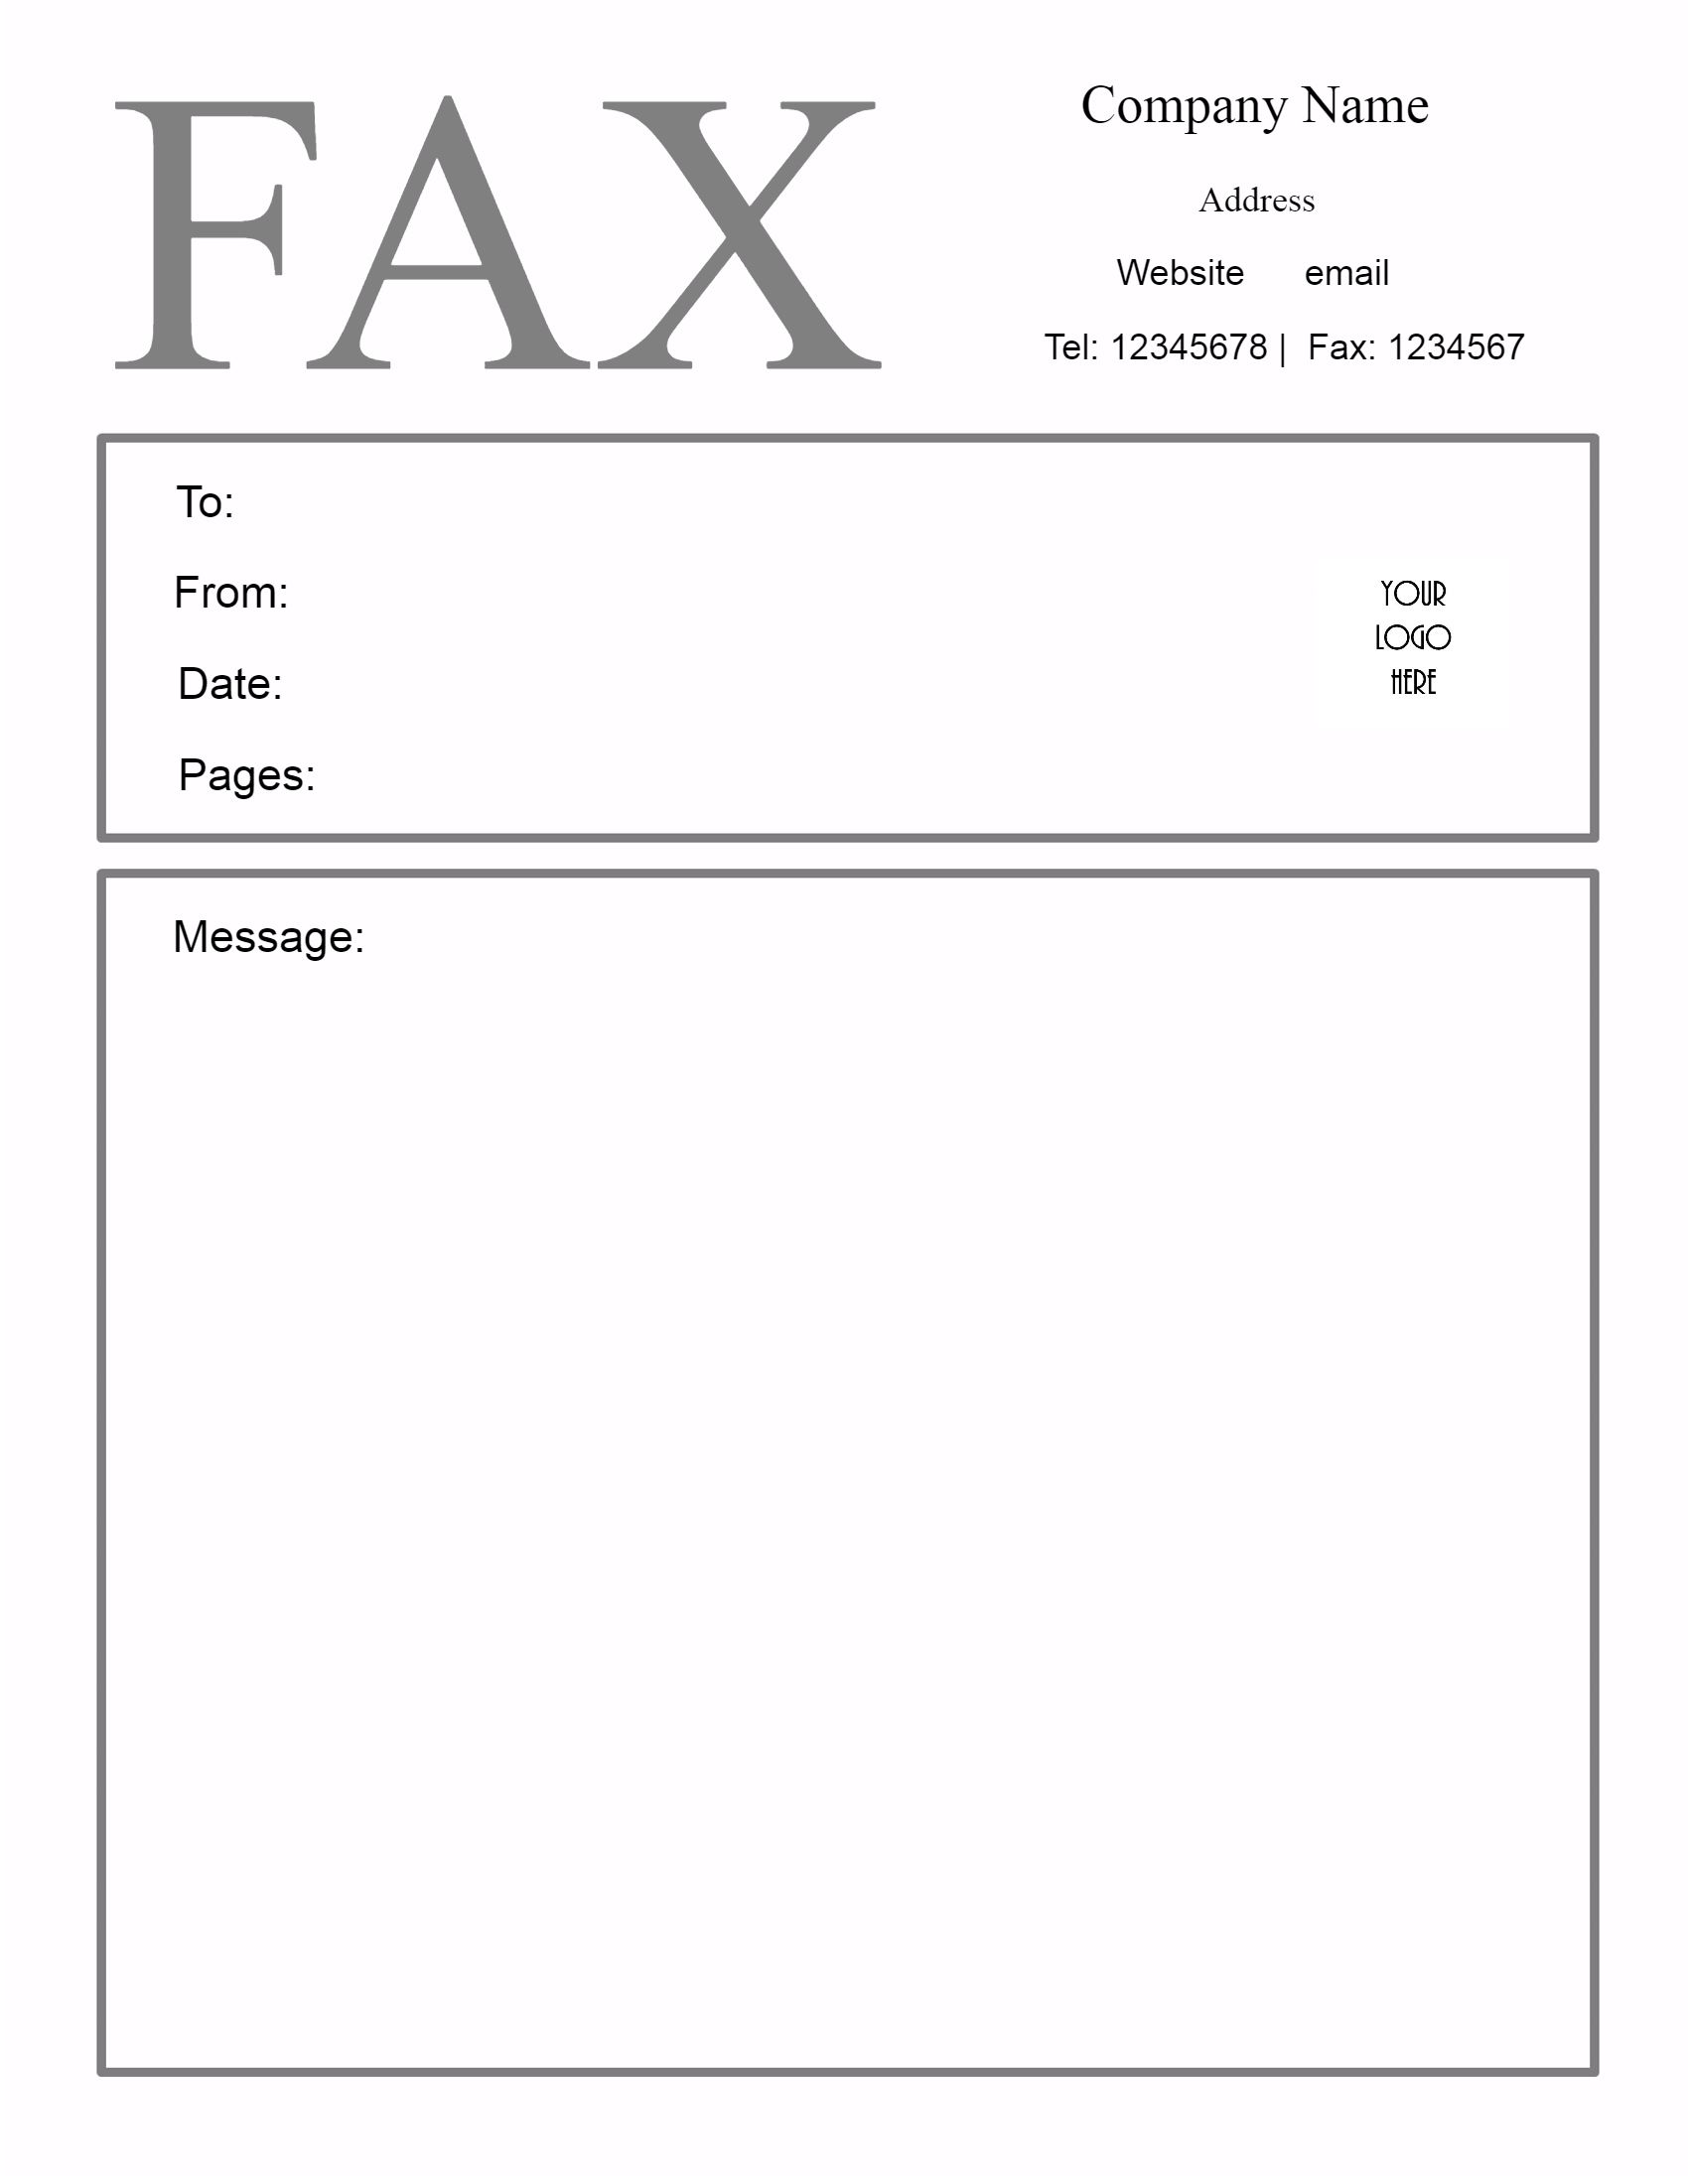 Fax Cover Sheet  Fax Template Free